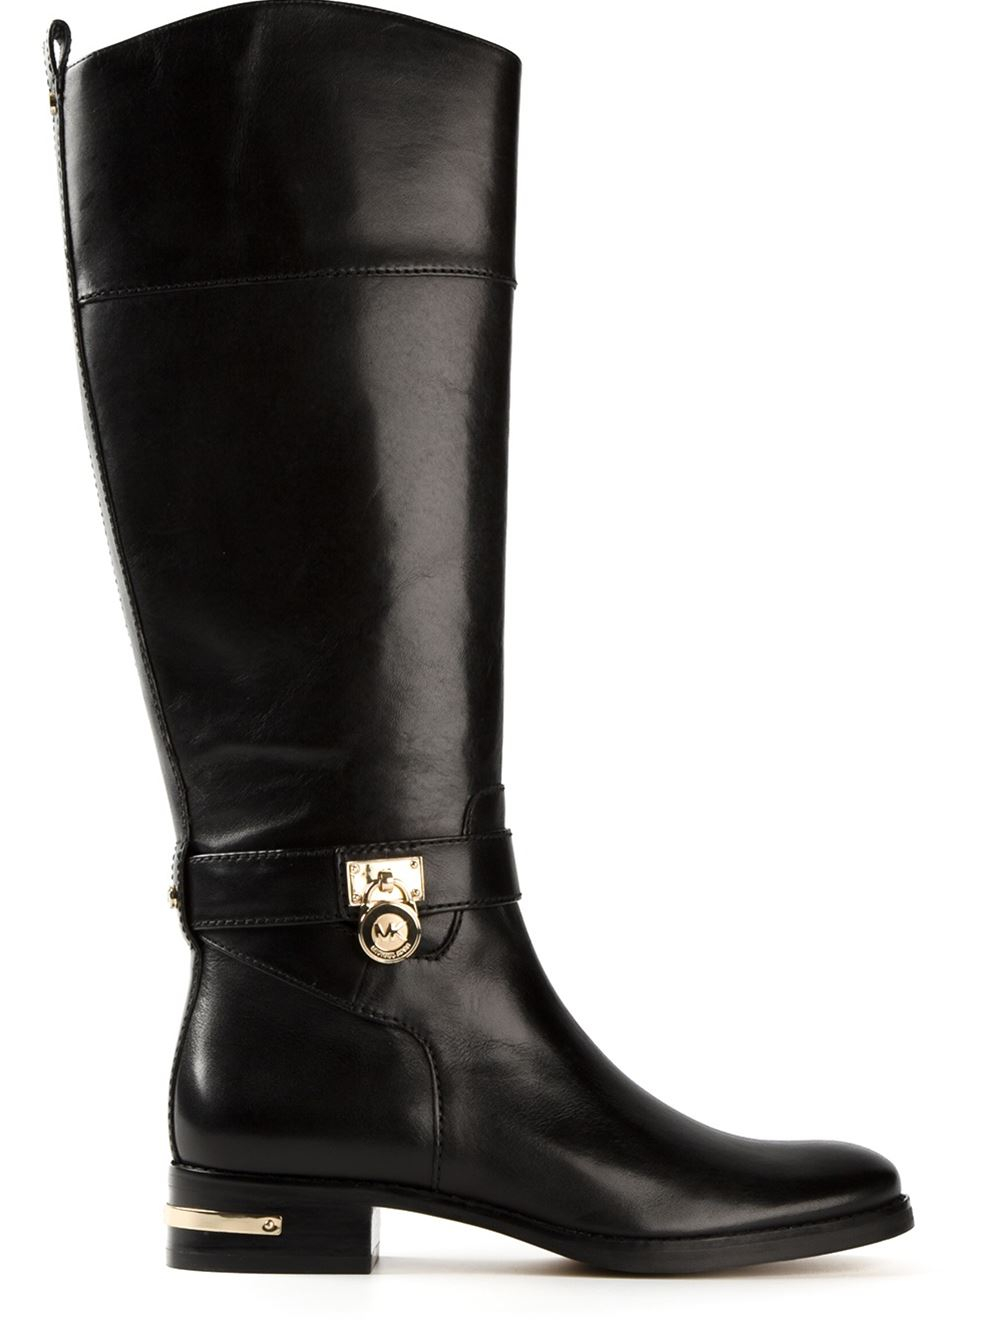 Michael michael kors 'Aileen' Riding Boots in Black | Lyst